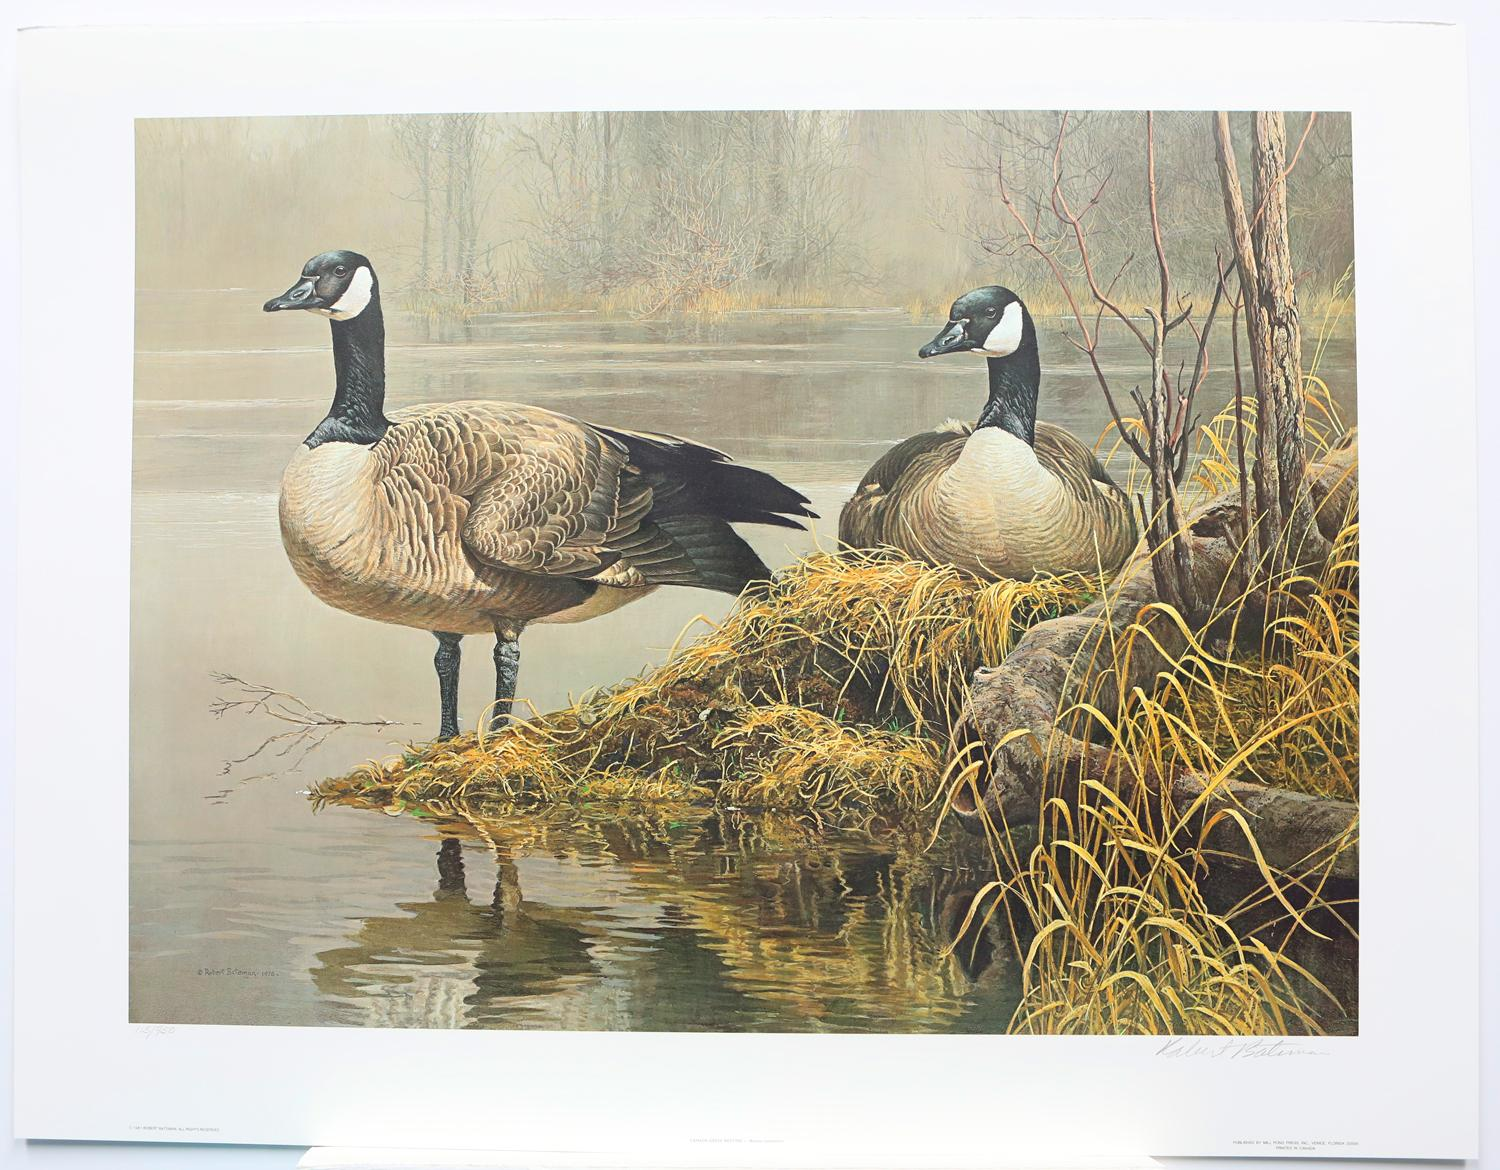 """Robert Bateman's """"Canada Geese - Nesting"""" Limited Edition Print Signed and Numbered"""